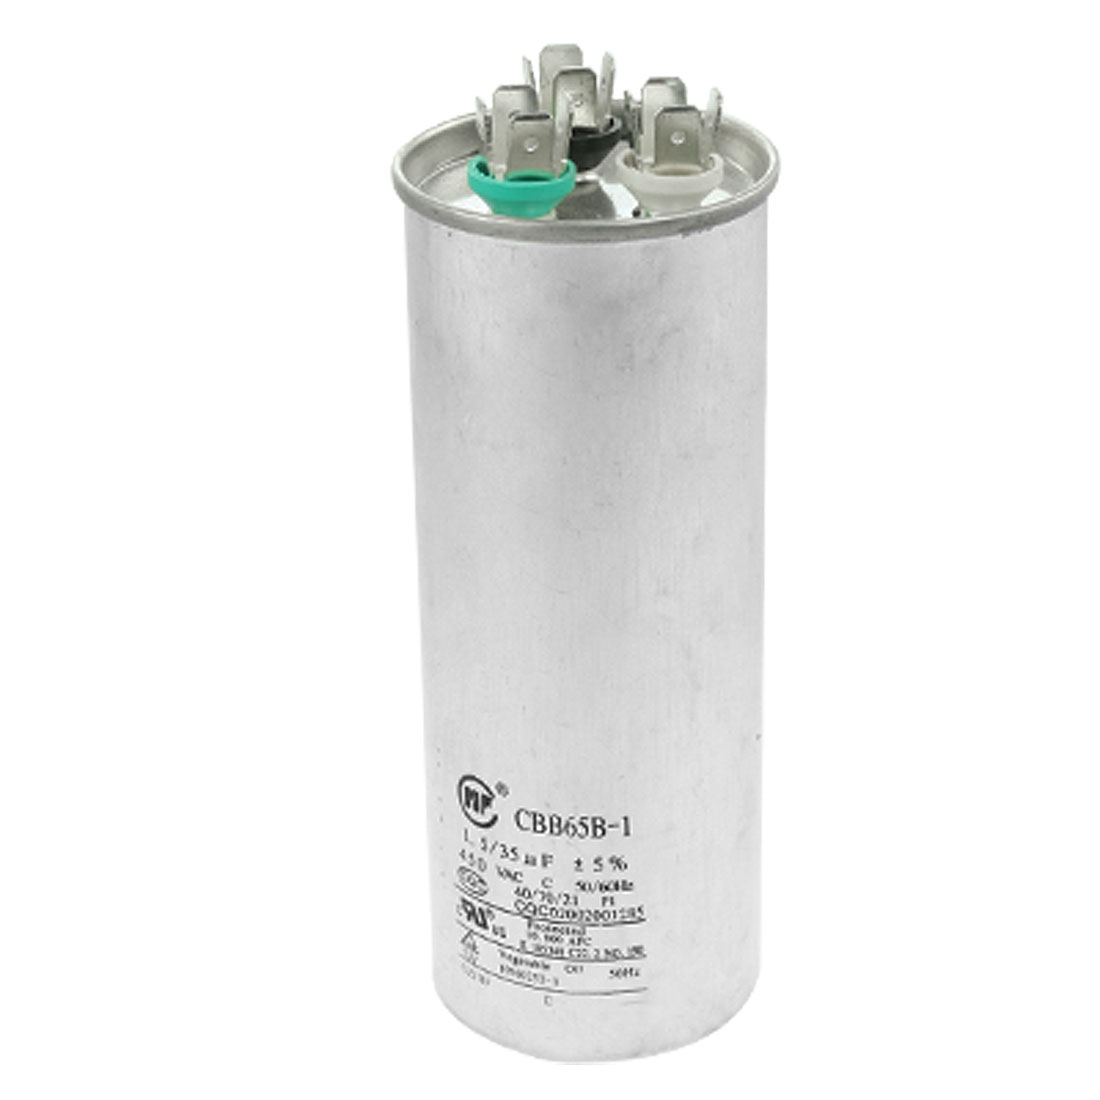 CBB65B-1 450VAC 50/60Hz 1.5uF+35uF Air Conditioner Capacitor